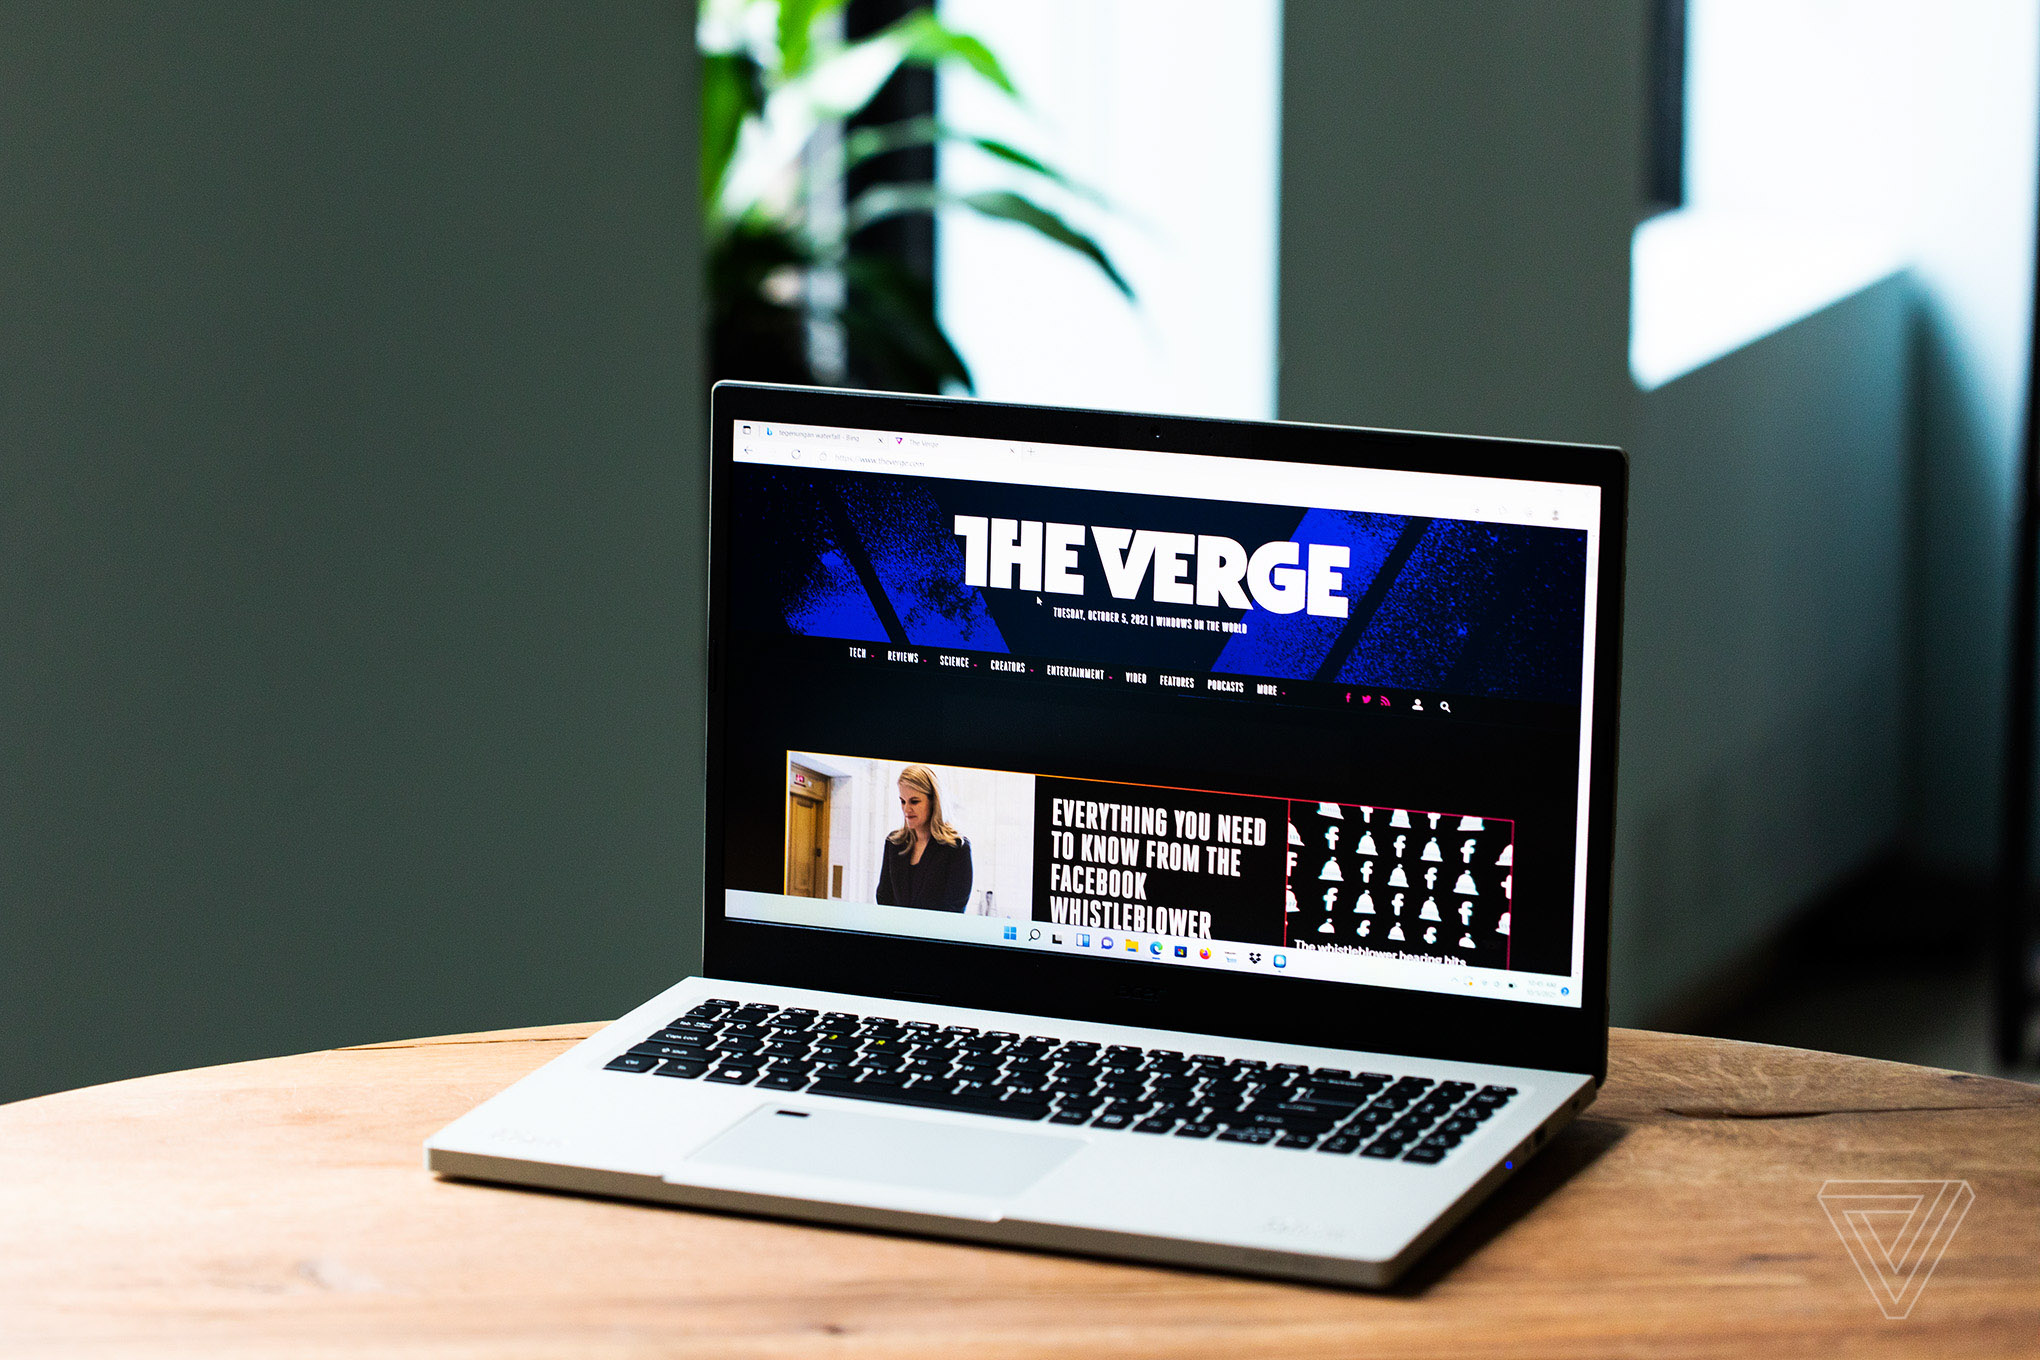 The Acer Aspire Vero open on a wooden table with a houseplant in the background. The screen displays The Verge homepage.